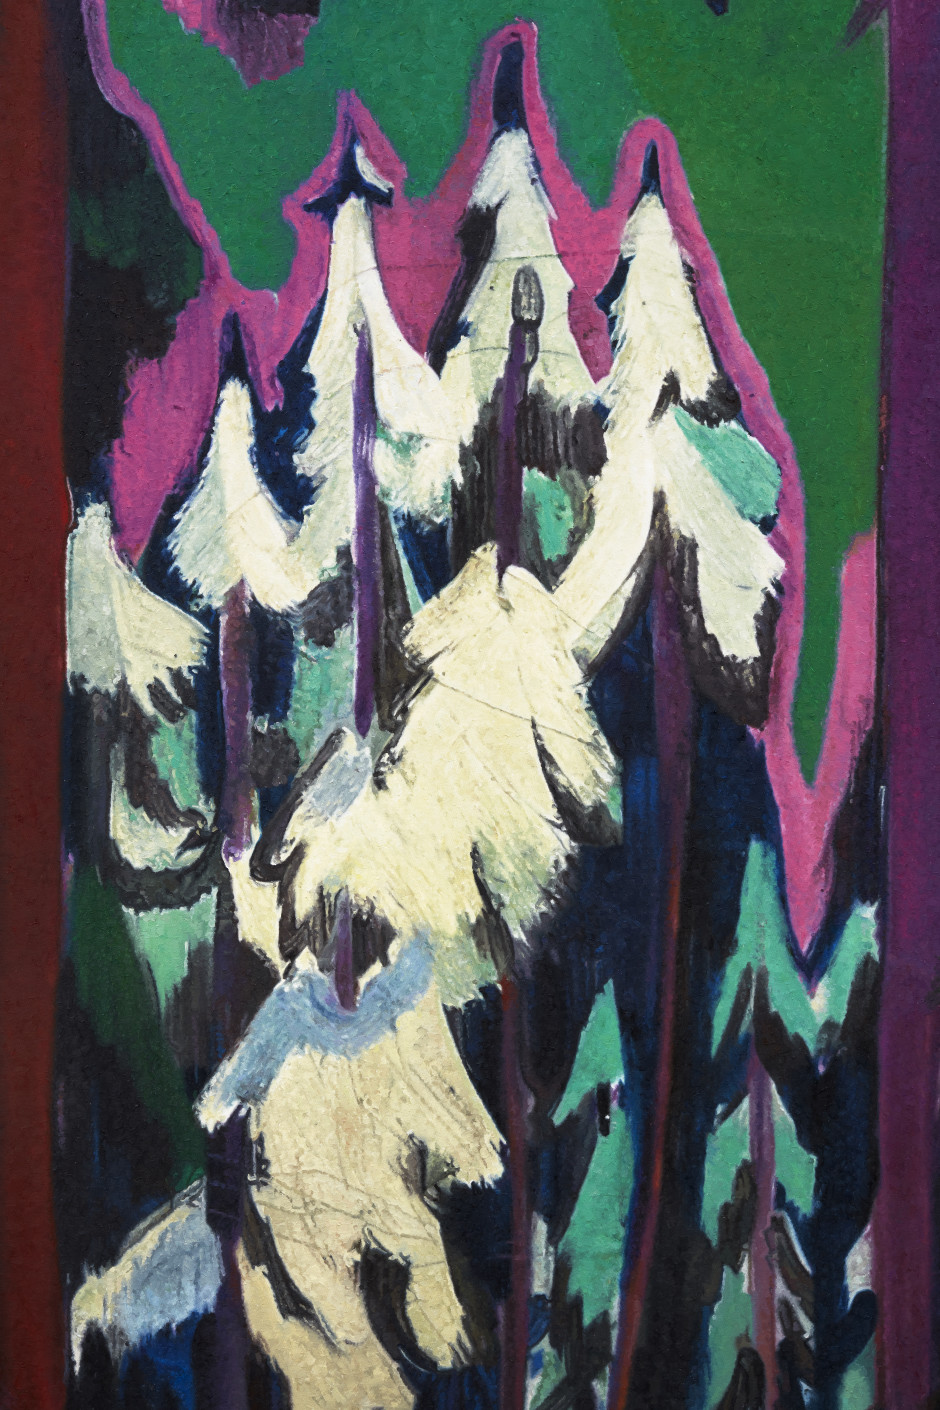 Kirchner Wald im Winter 1925, 2019  oil on canvas  242.3 x 203 x 5.8 cm / 95 3/8 x 79 7/8 x 2 1/4 in